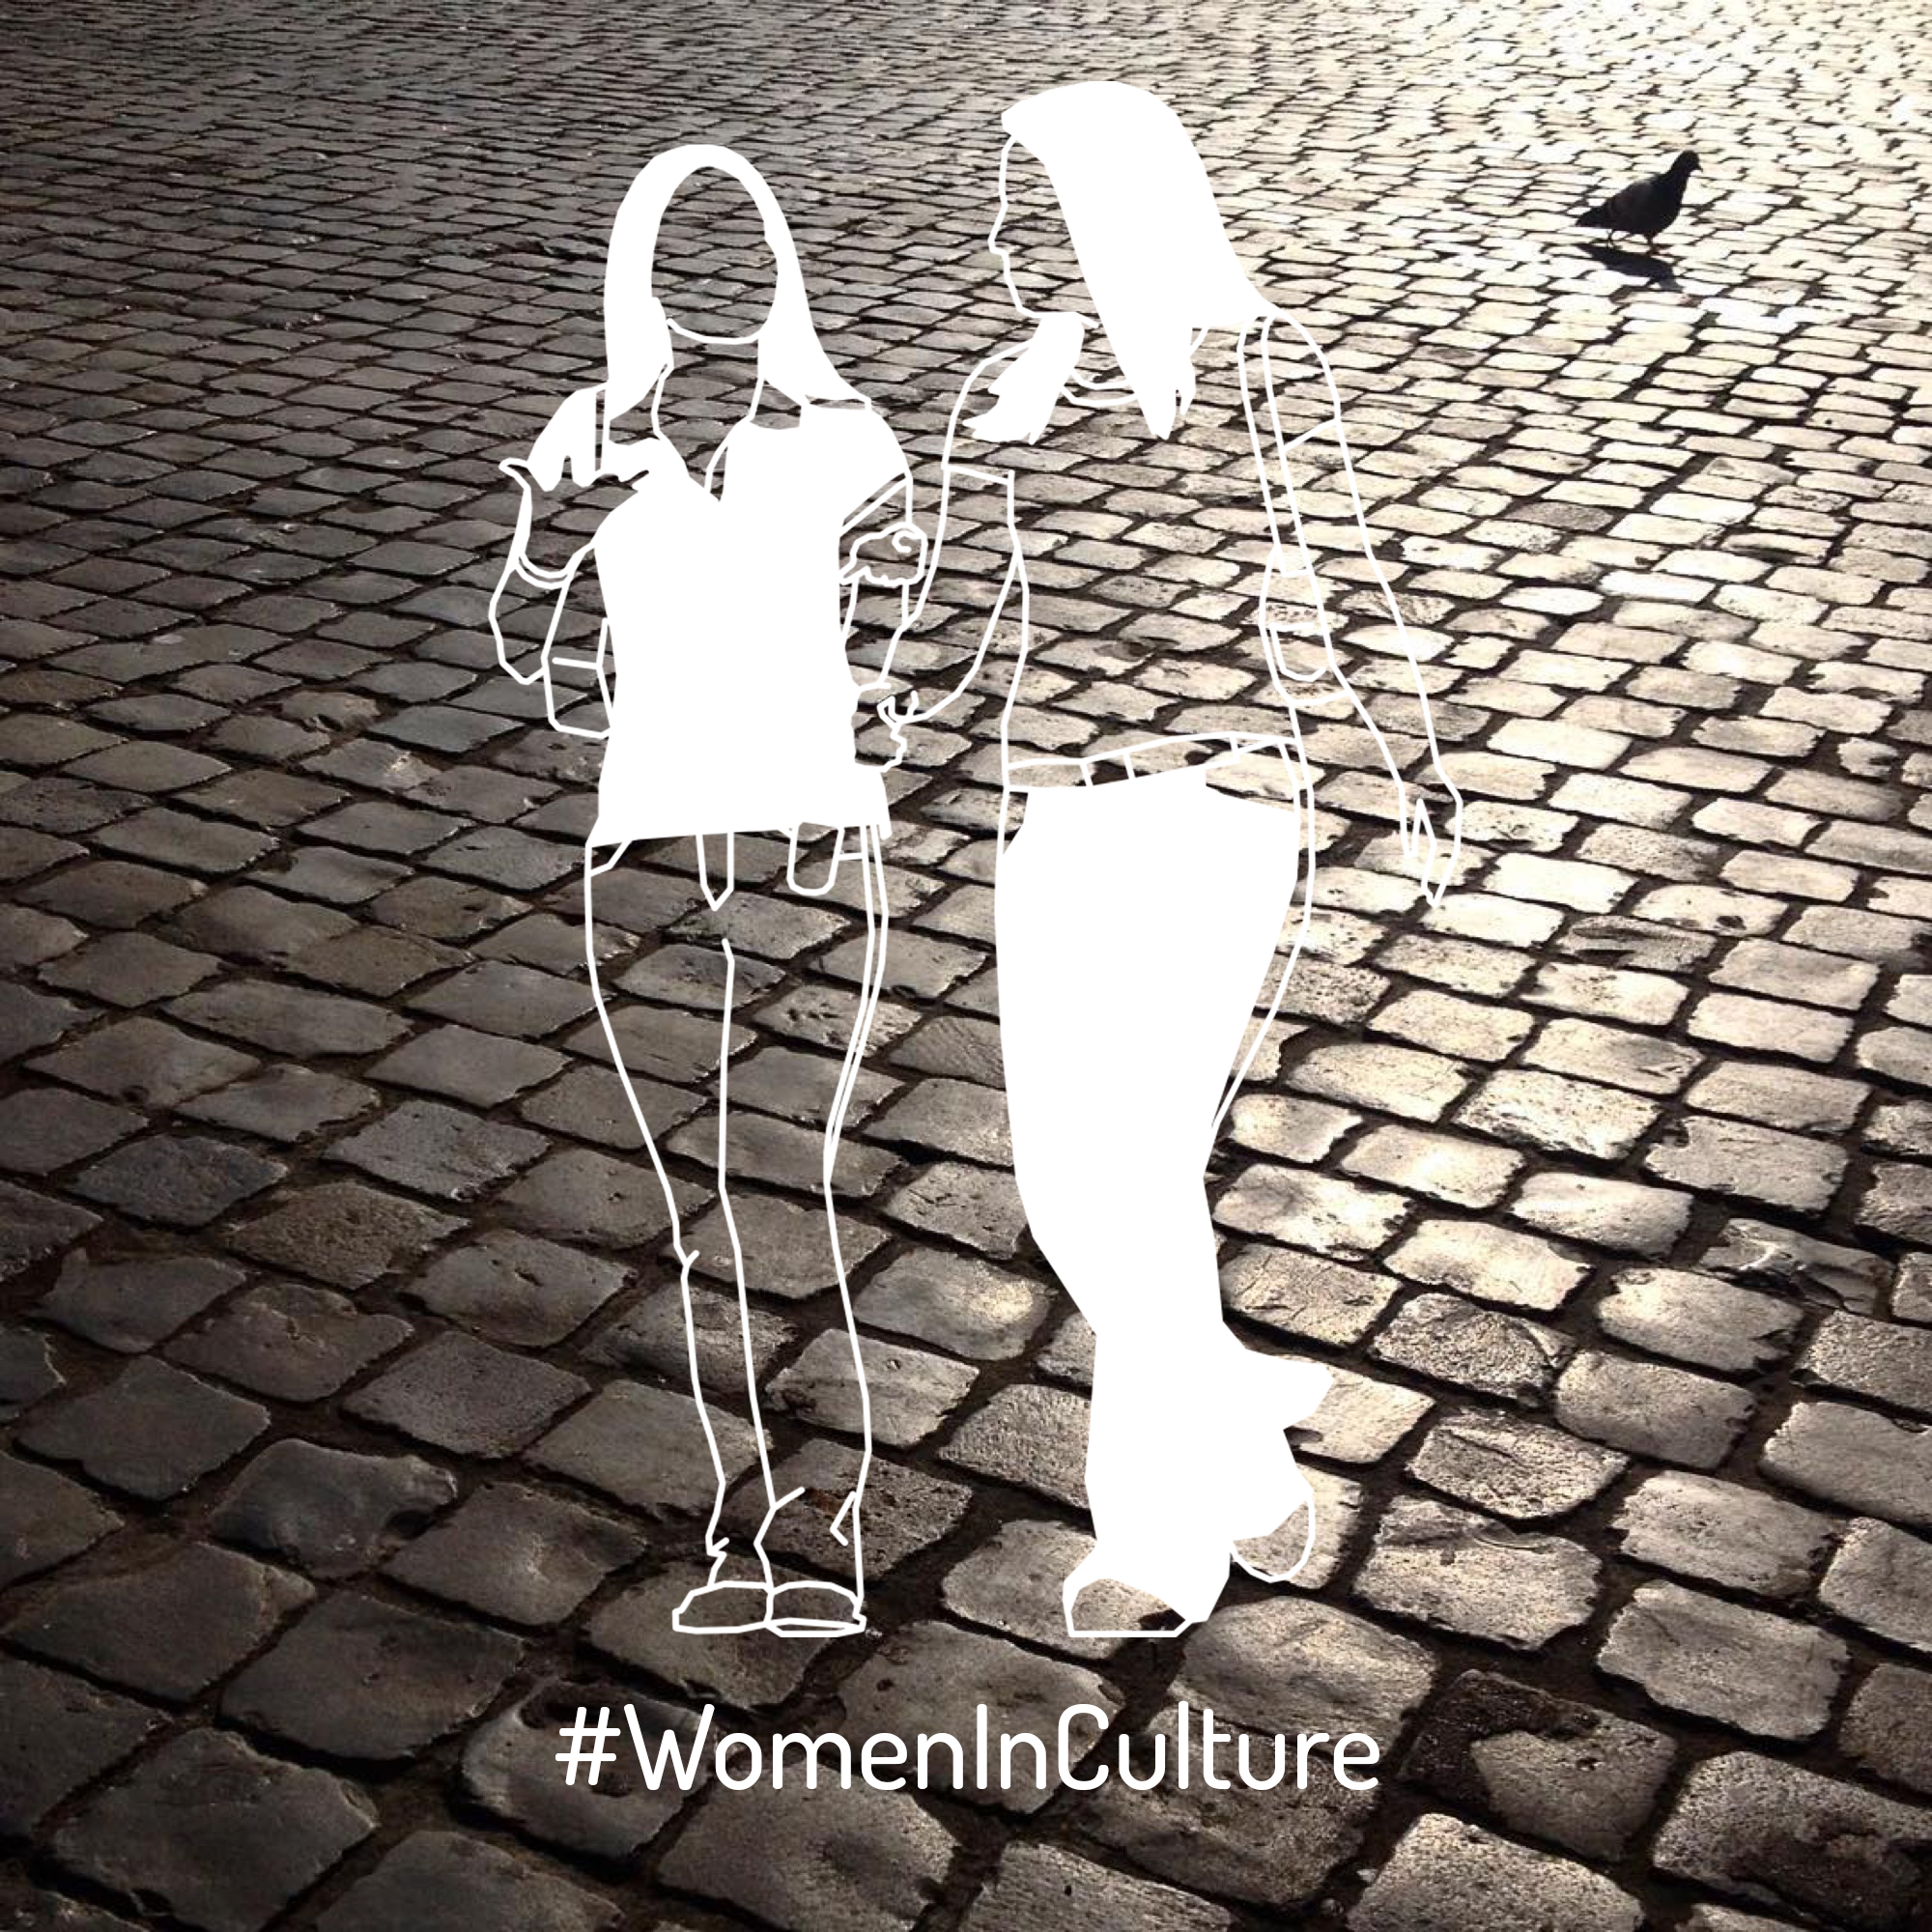 #WomenInCulture